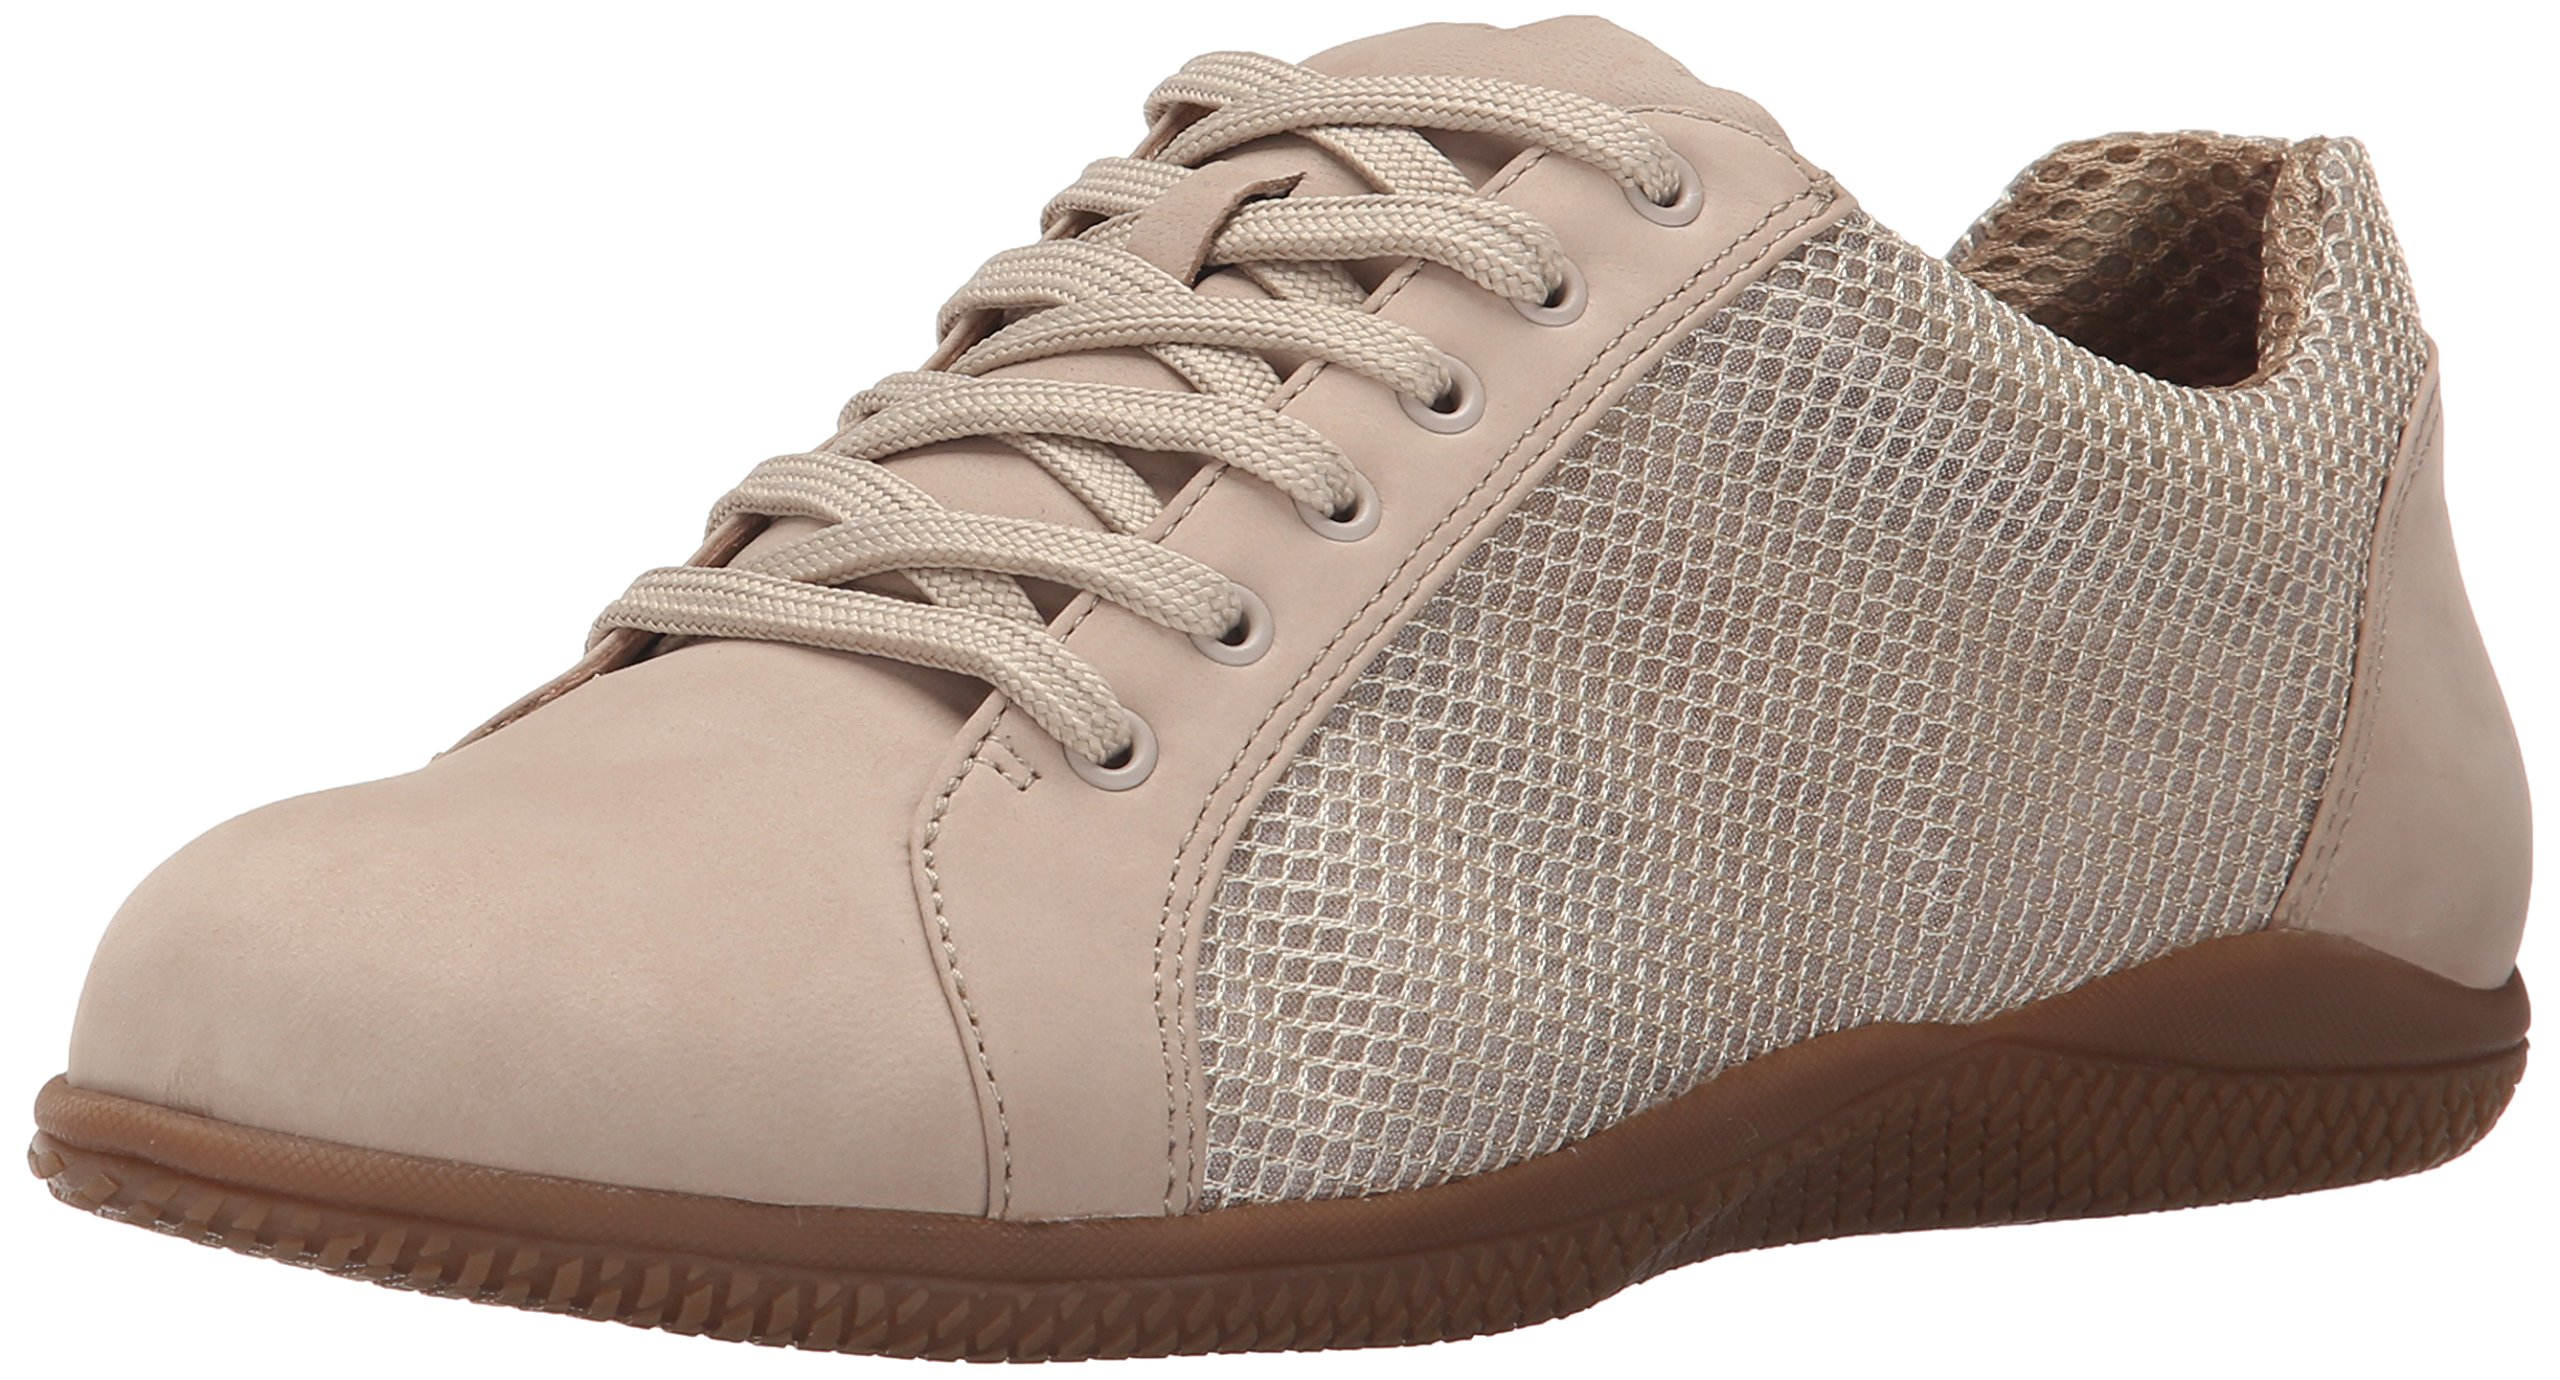 SoftWalk Women's Hickory Oxford, Sand, 7.5 M US